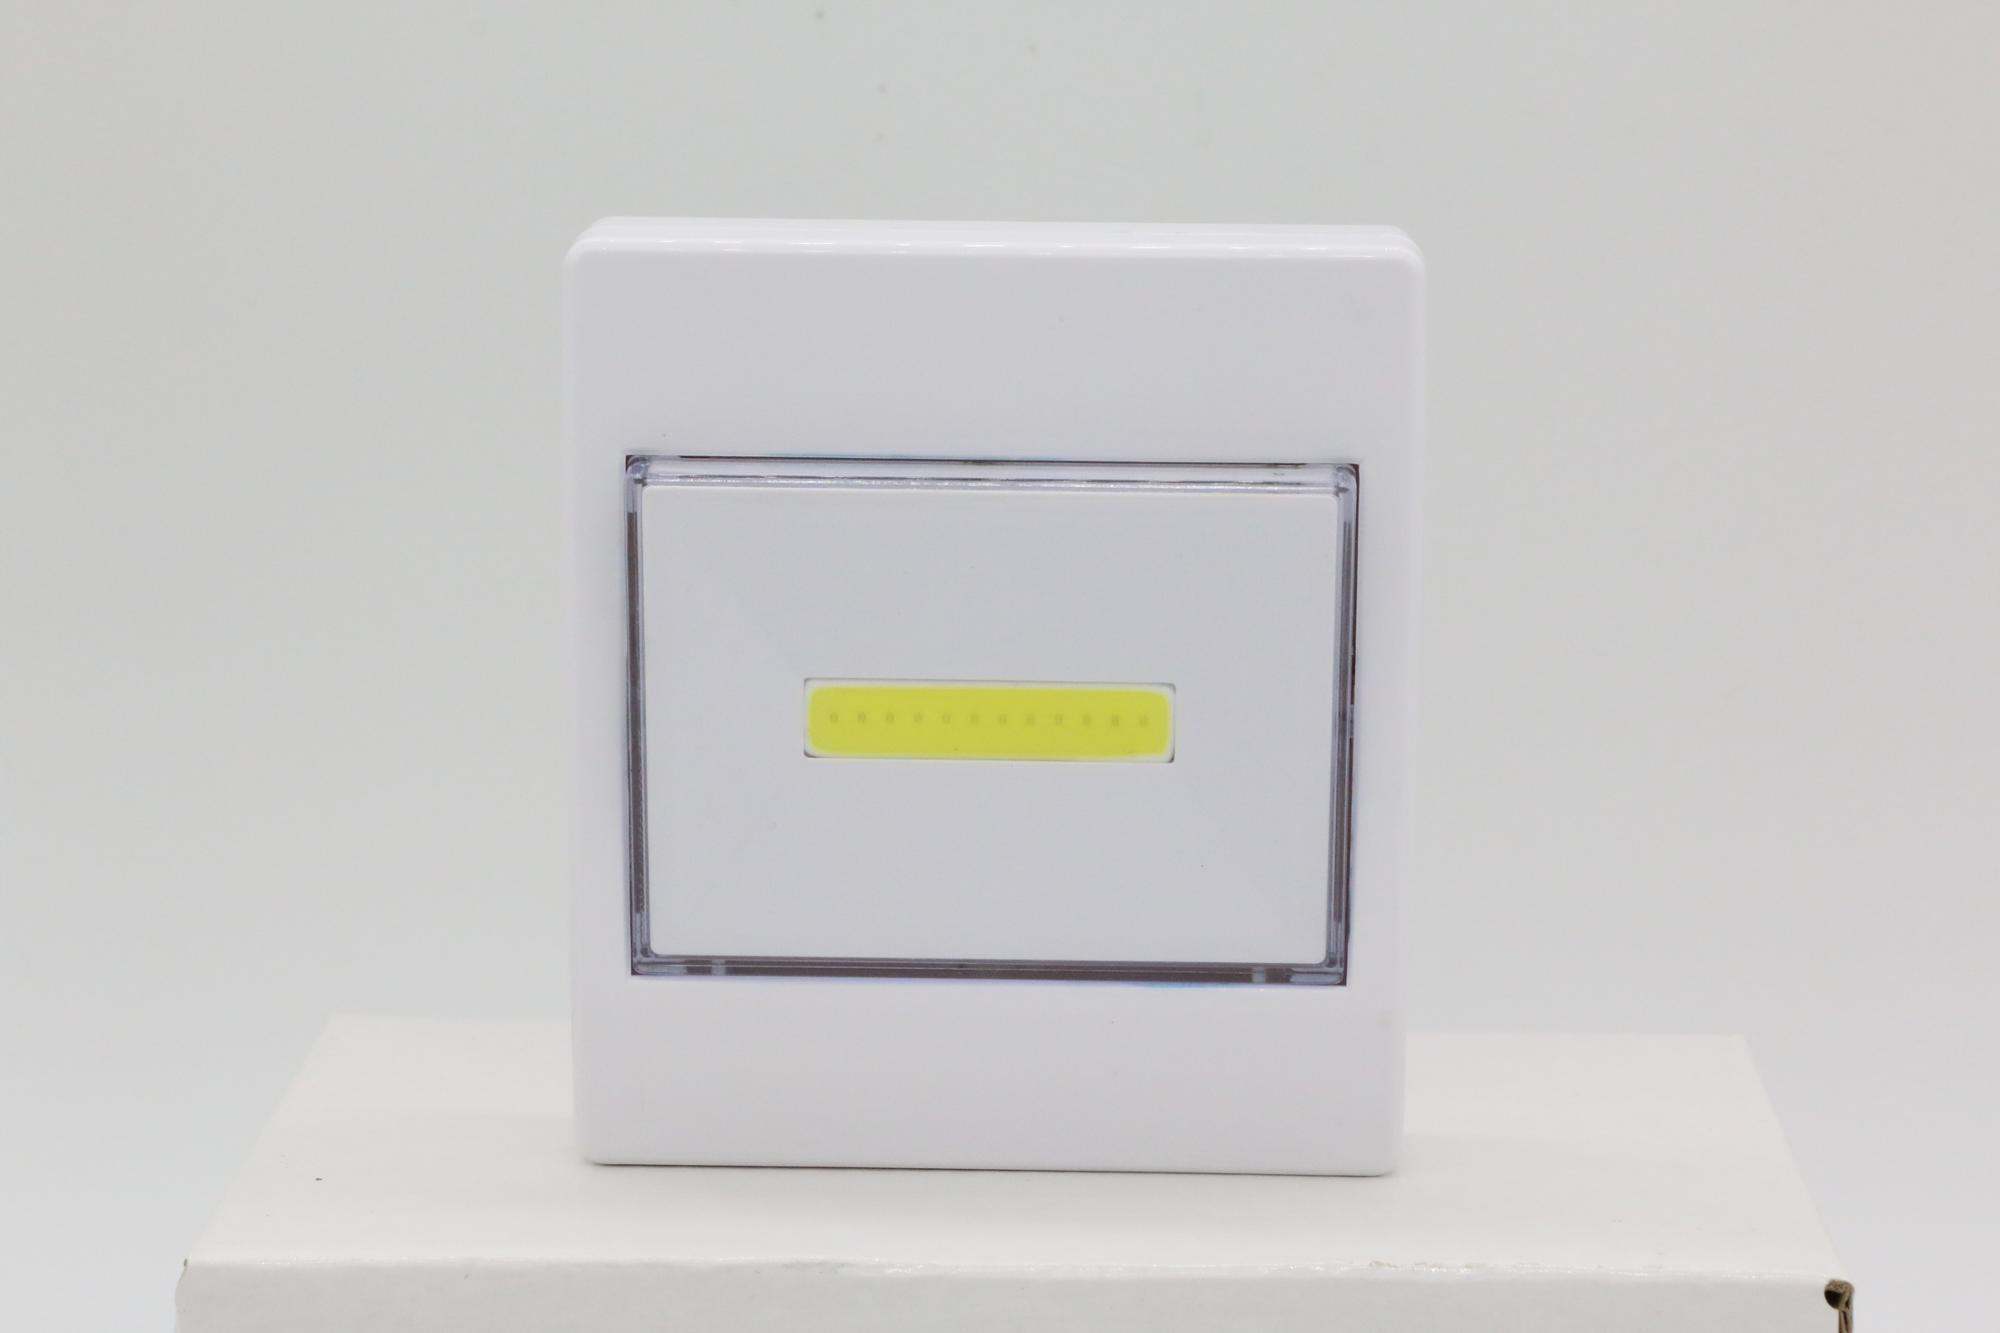 Hot Sell LED Switch Light, 3W COB with 150lm, Strong Magnet, Both Sides Adhesive Stick, Nail Peg, 3xAAA